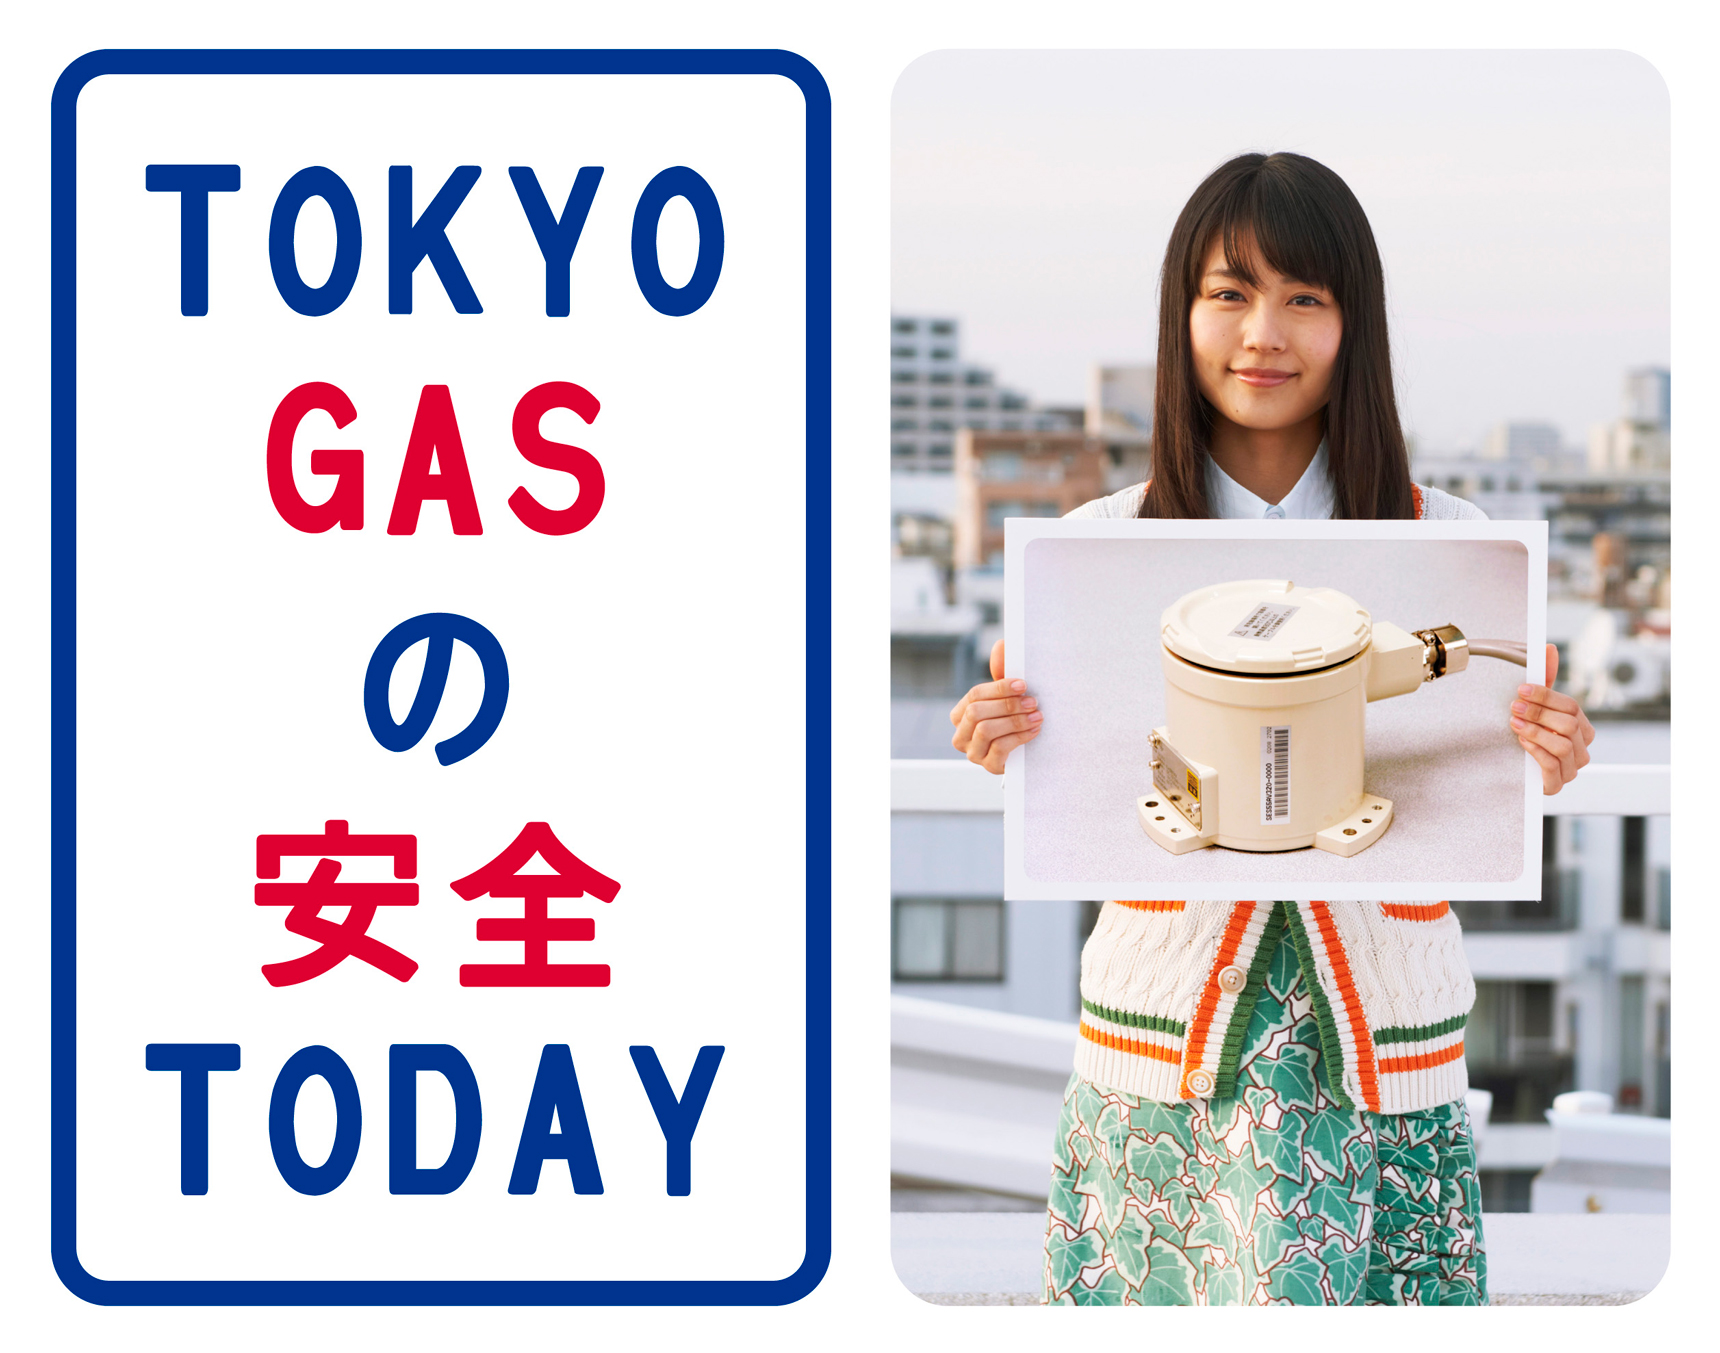 TOKYO GASの安全 TODAY